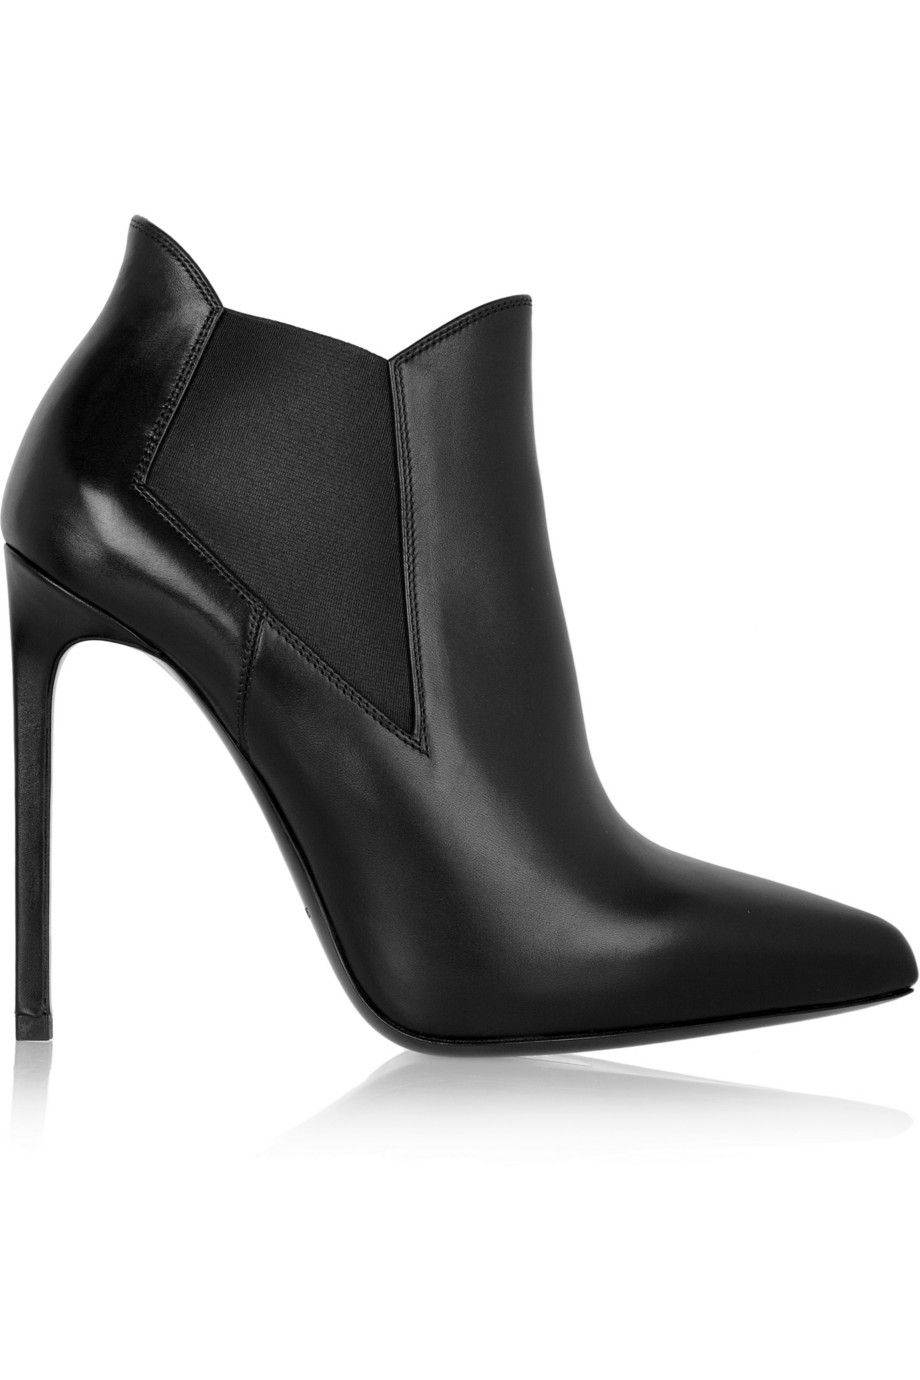 Saint Laurent | Leather ankle boots | NET-A-PORTER.COM